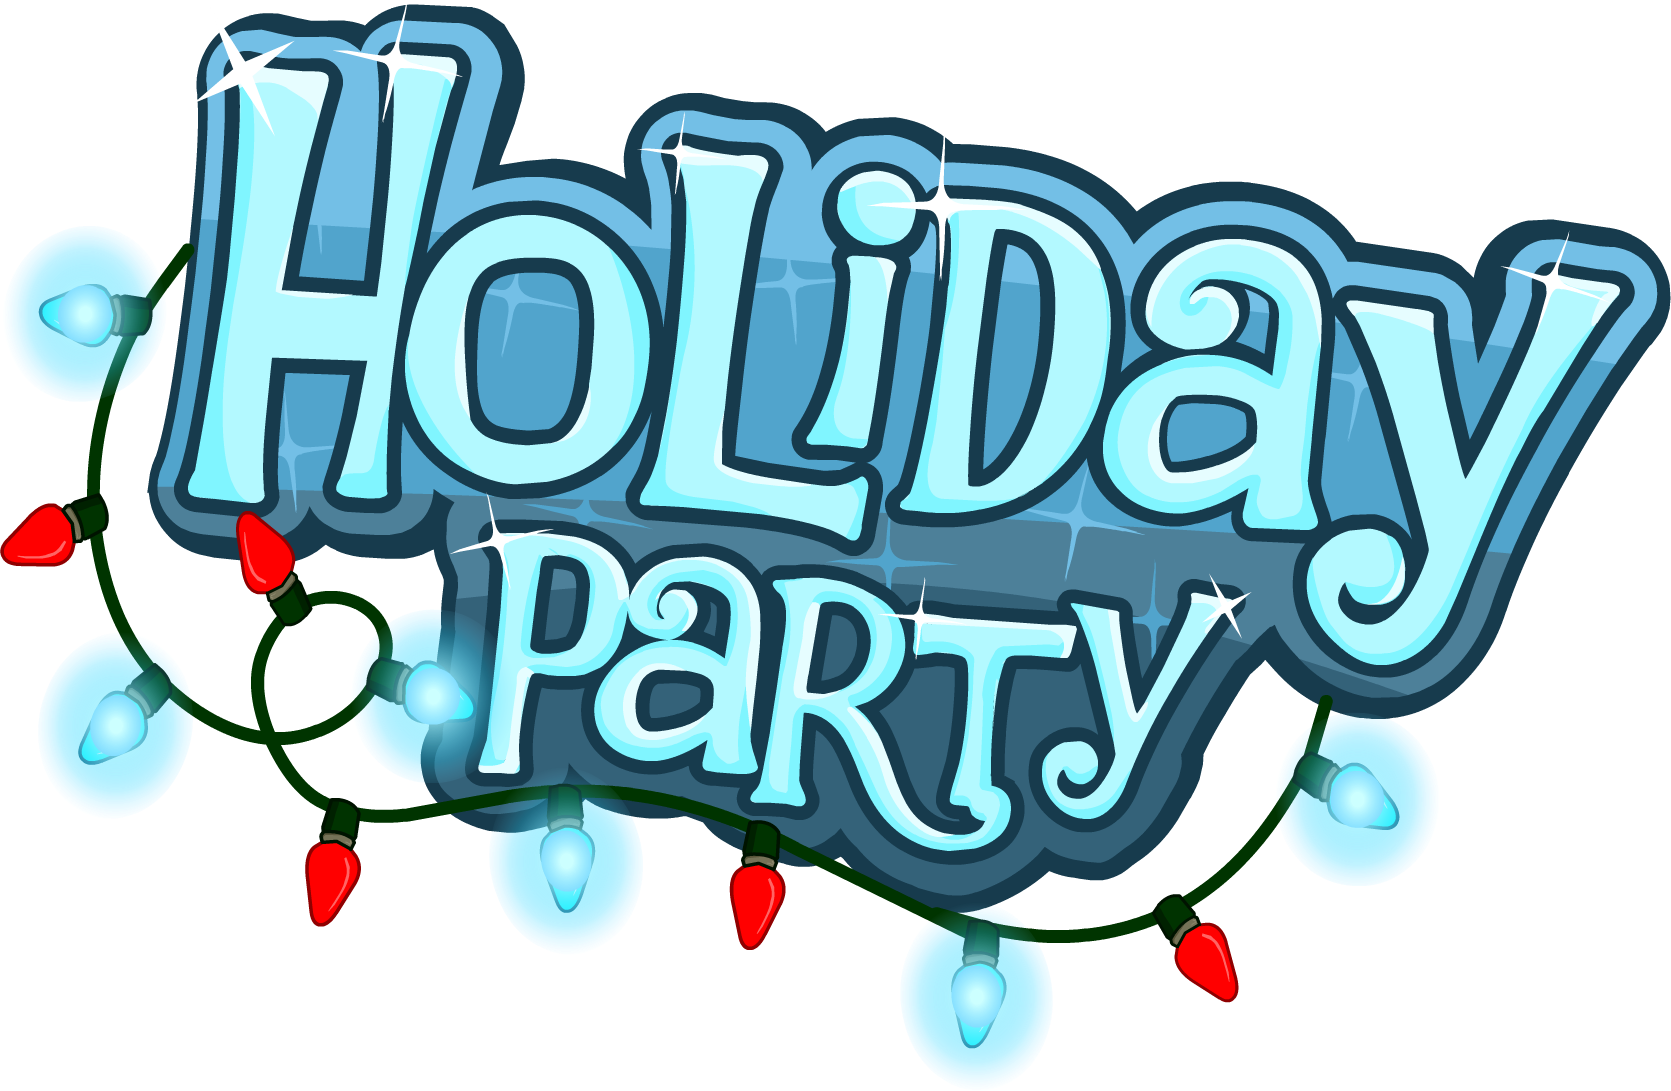 16 Holiday Party Graphics Images